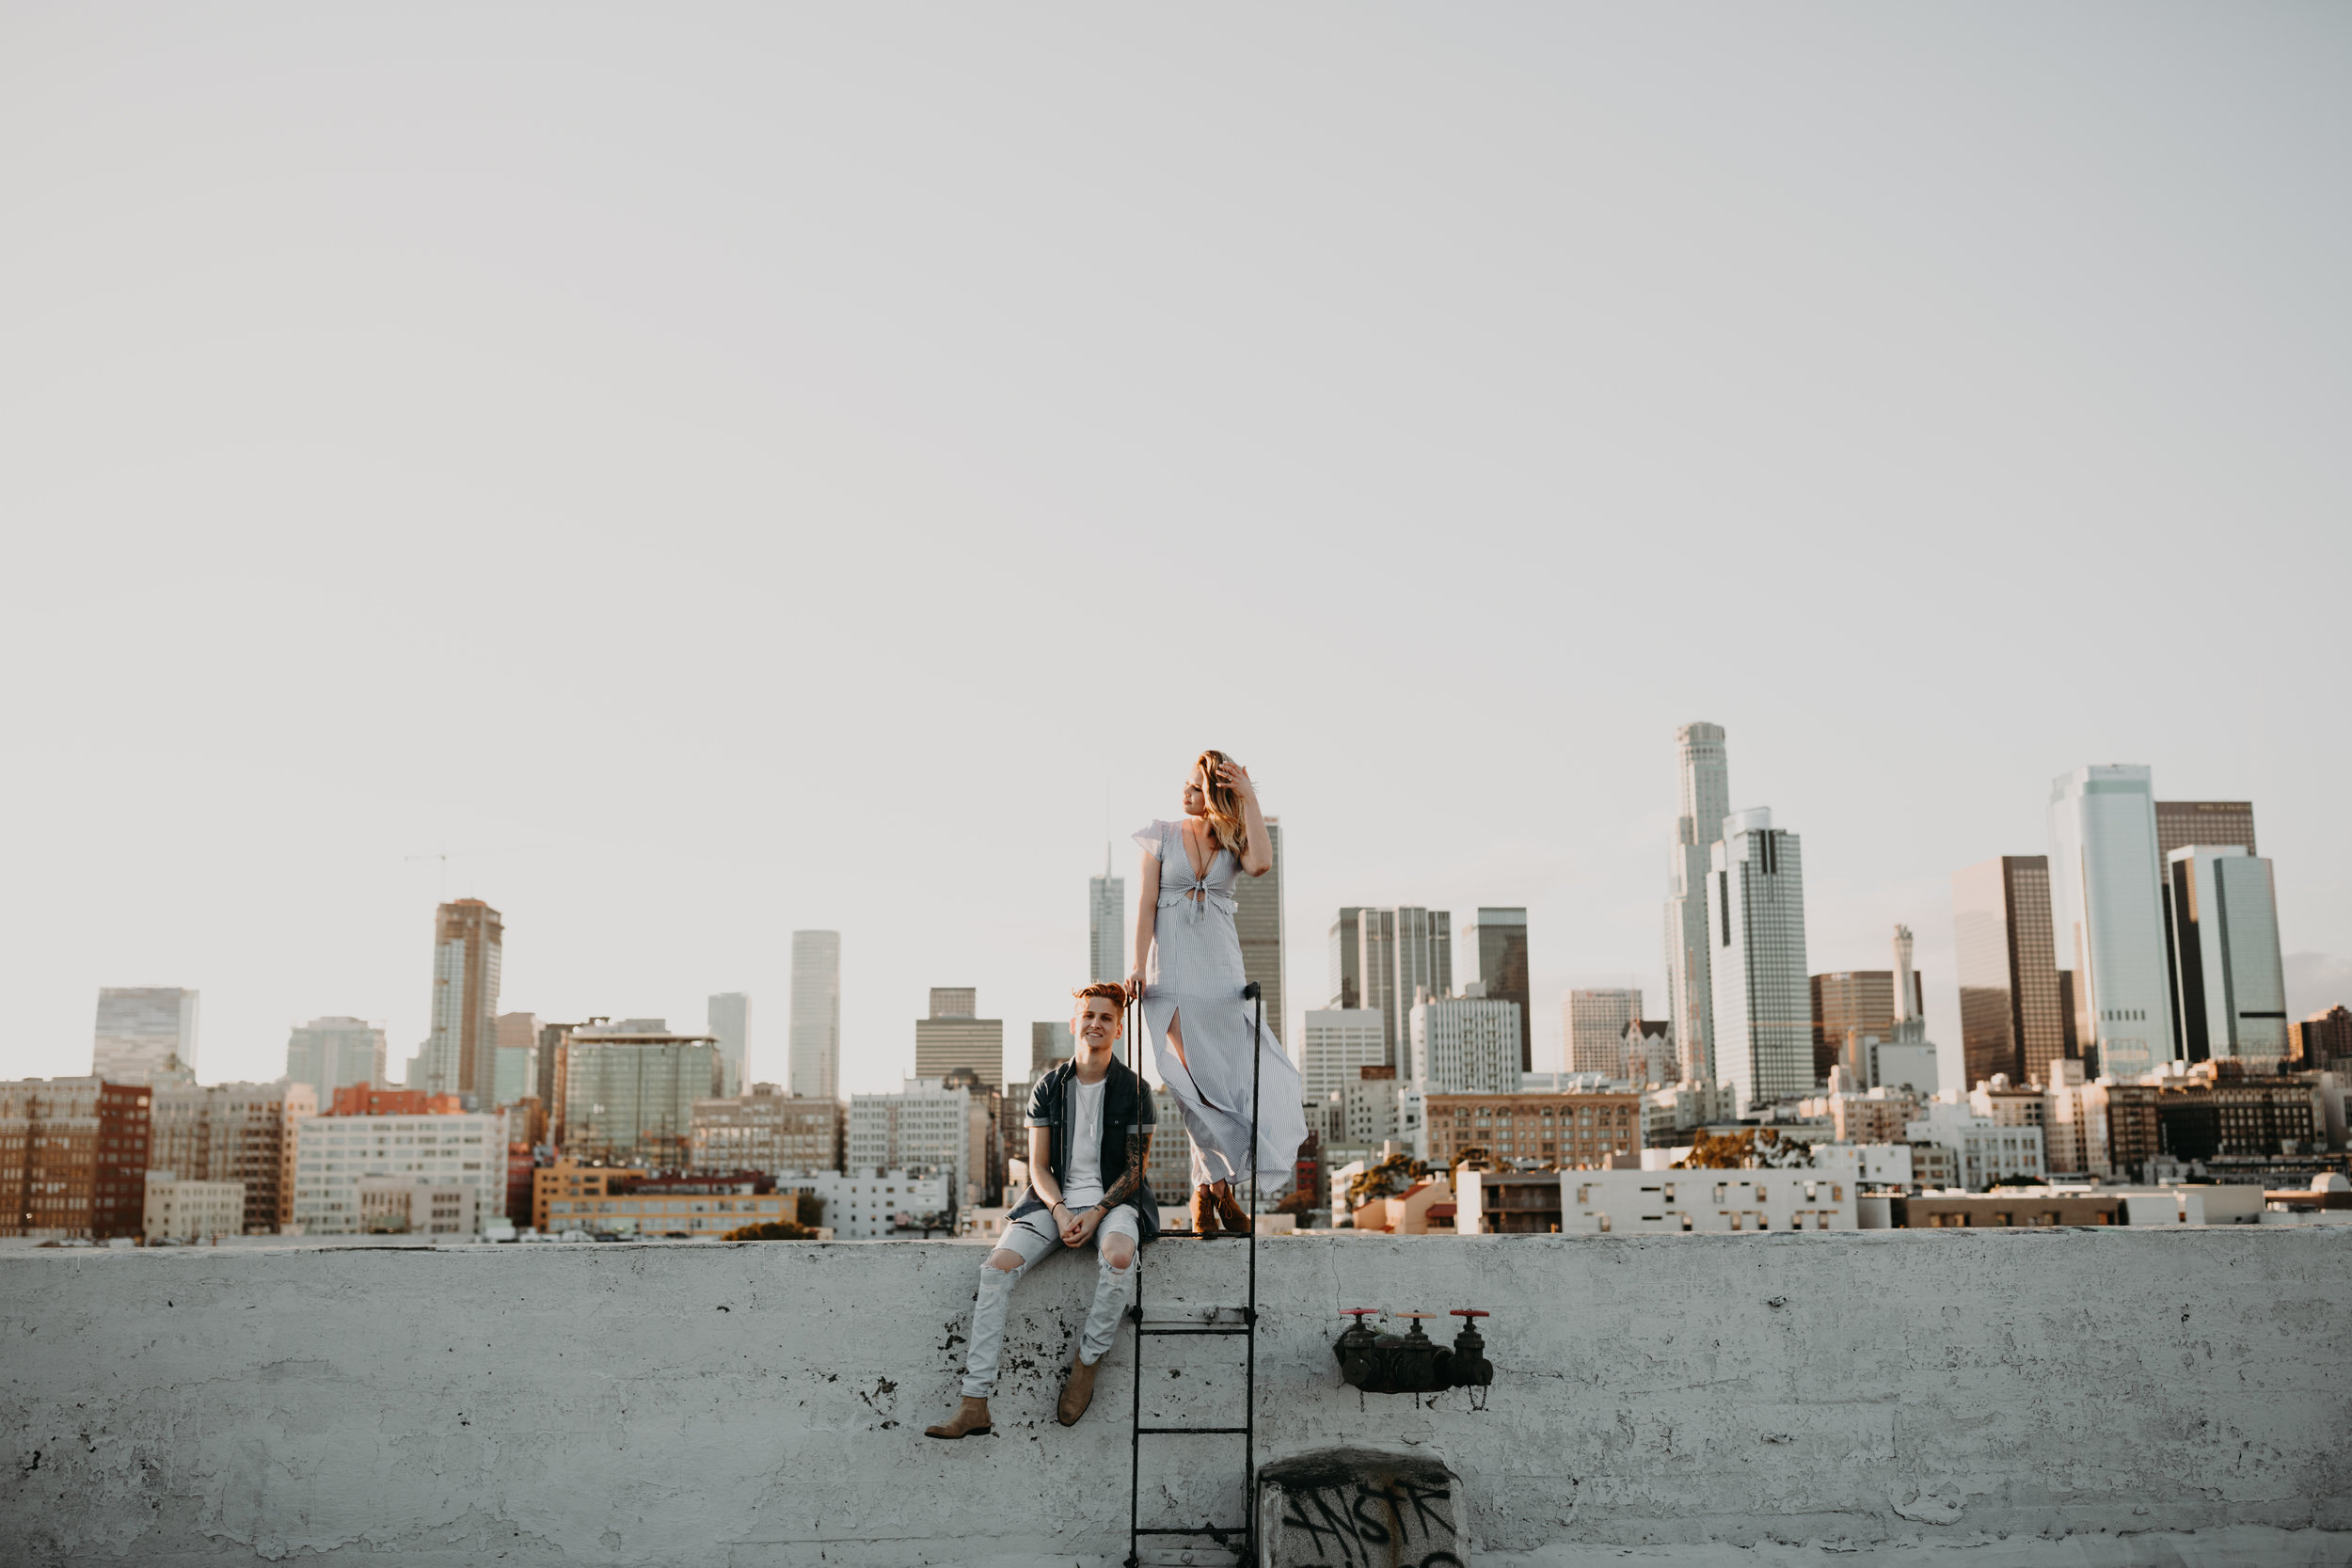 Los Angeles Rooftop Engagement Bayli & Ben  Emily Magers Photography-120.jpg